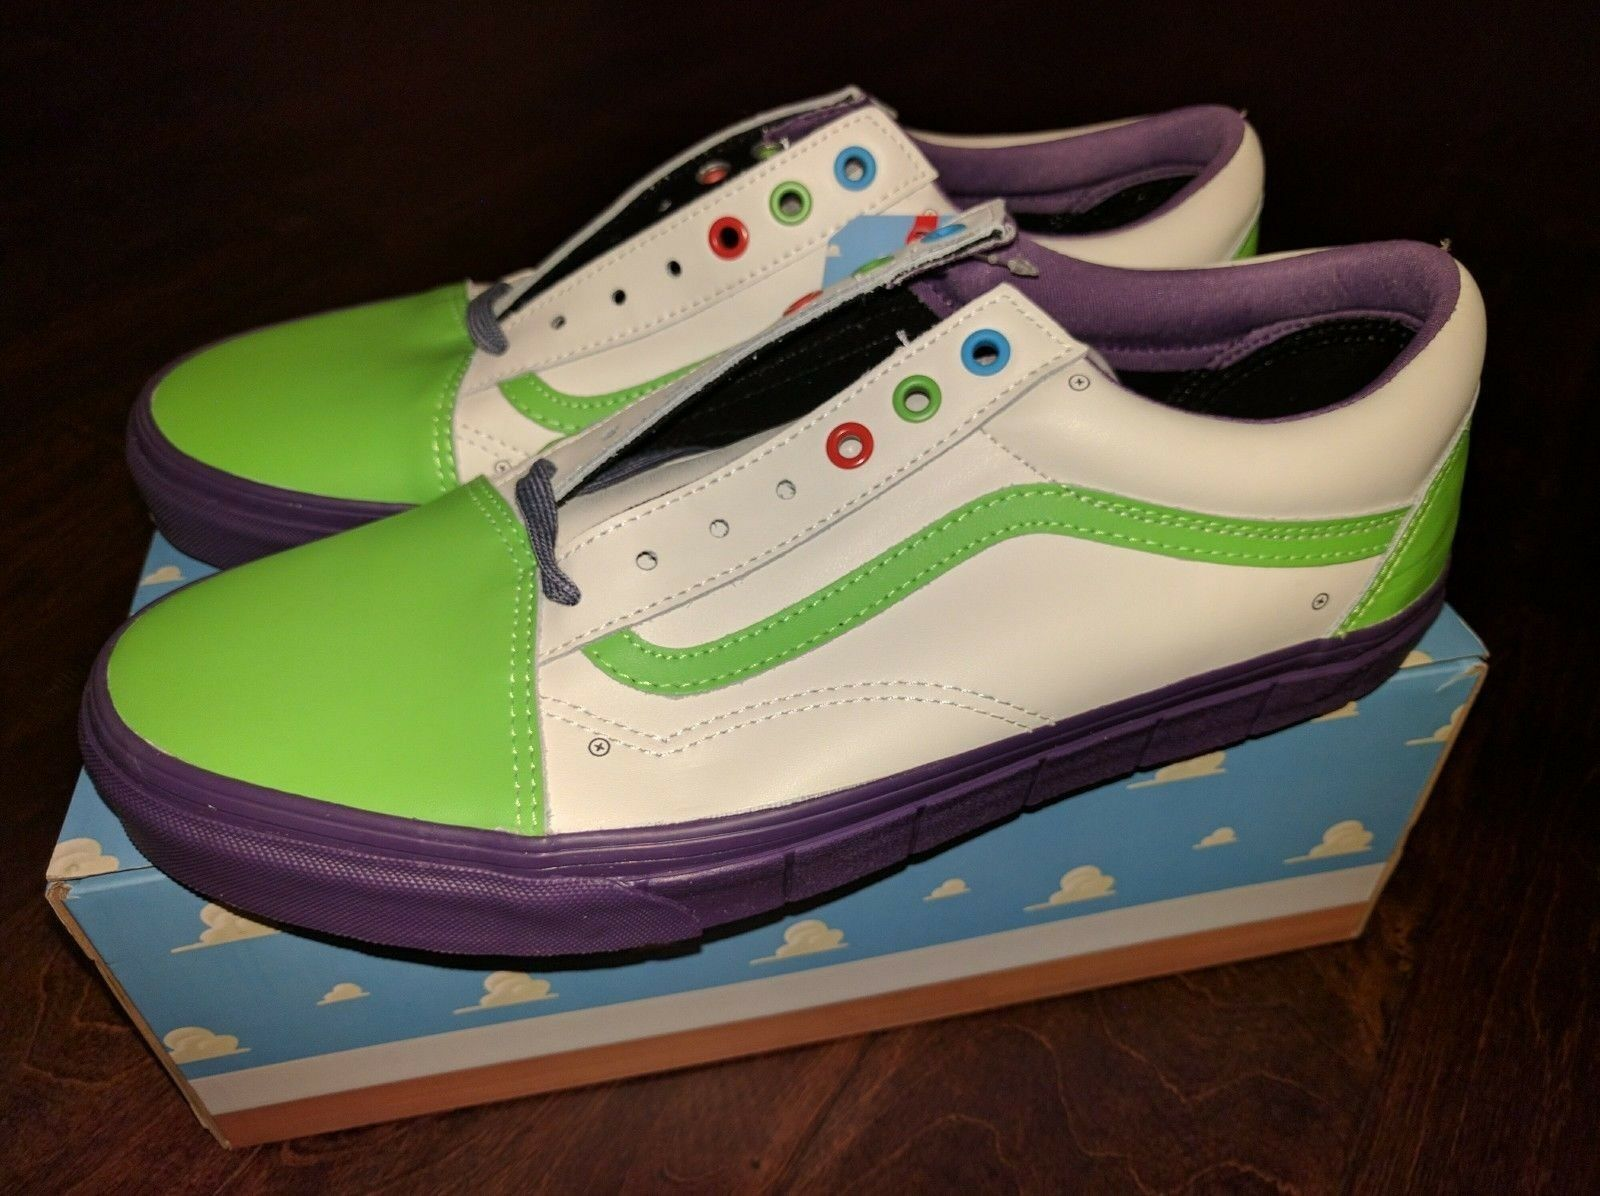 NEW Vans Old Skool Toy Story 4 Buzz Lightyear Land shoes White Green Purple RARE